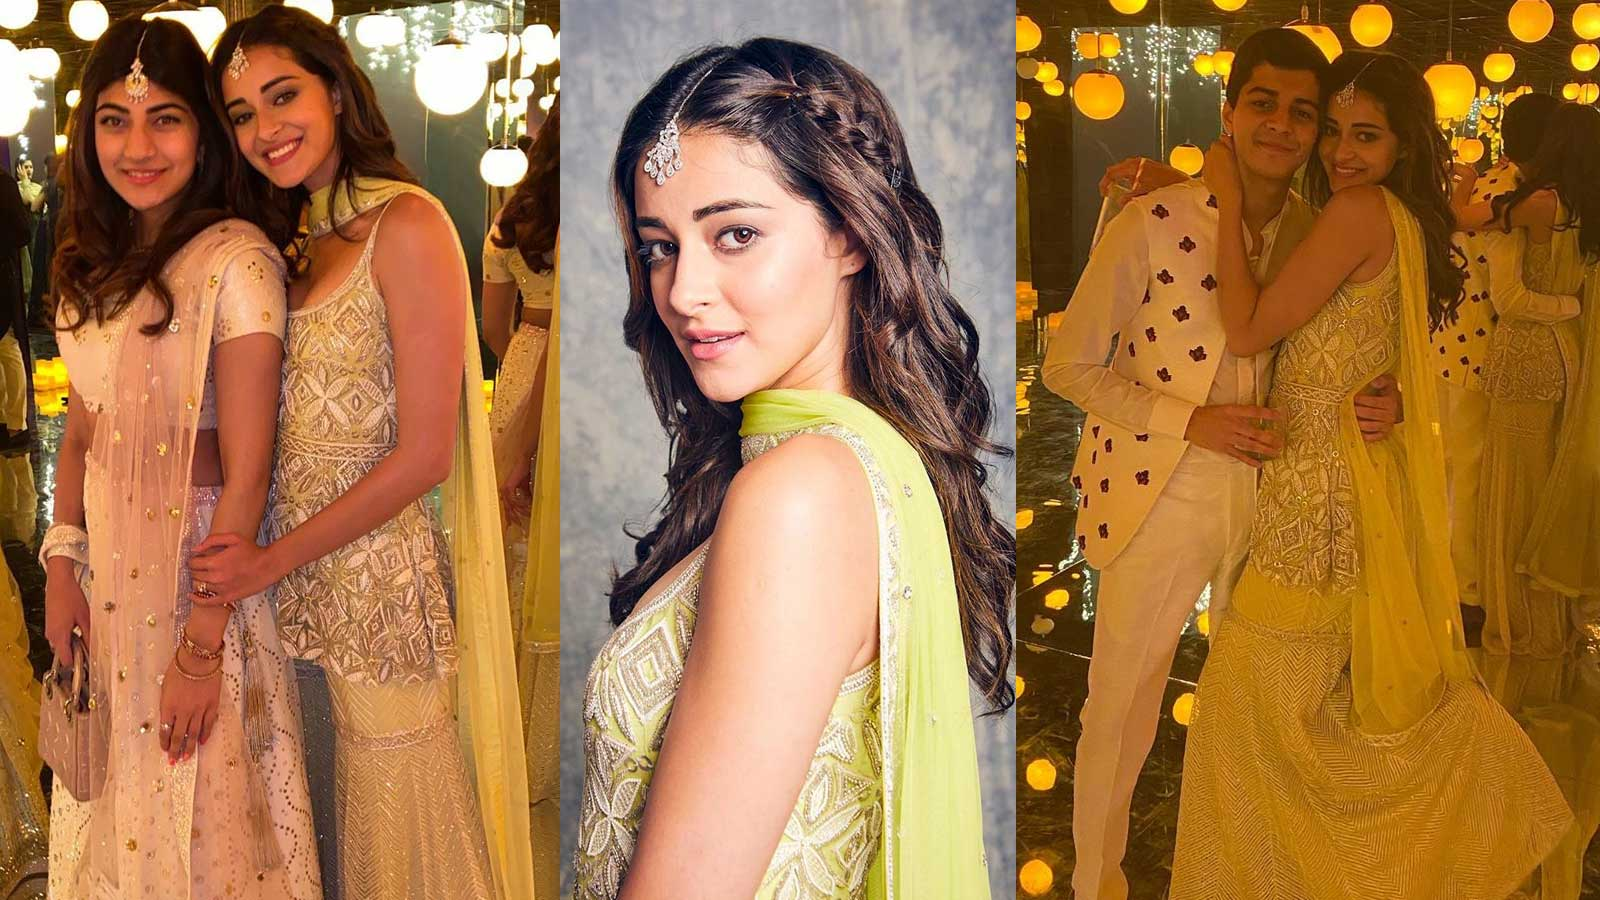 ananya-panday-loves-weddings-and-these-pictures-are-proof